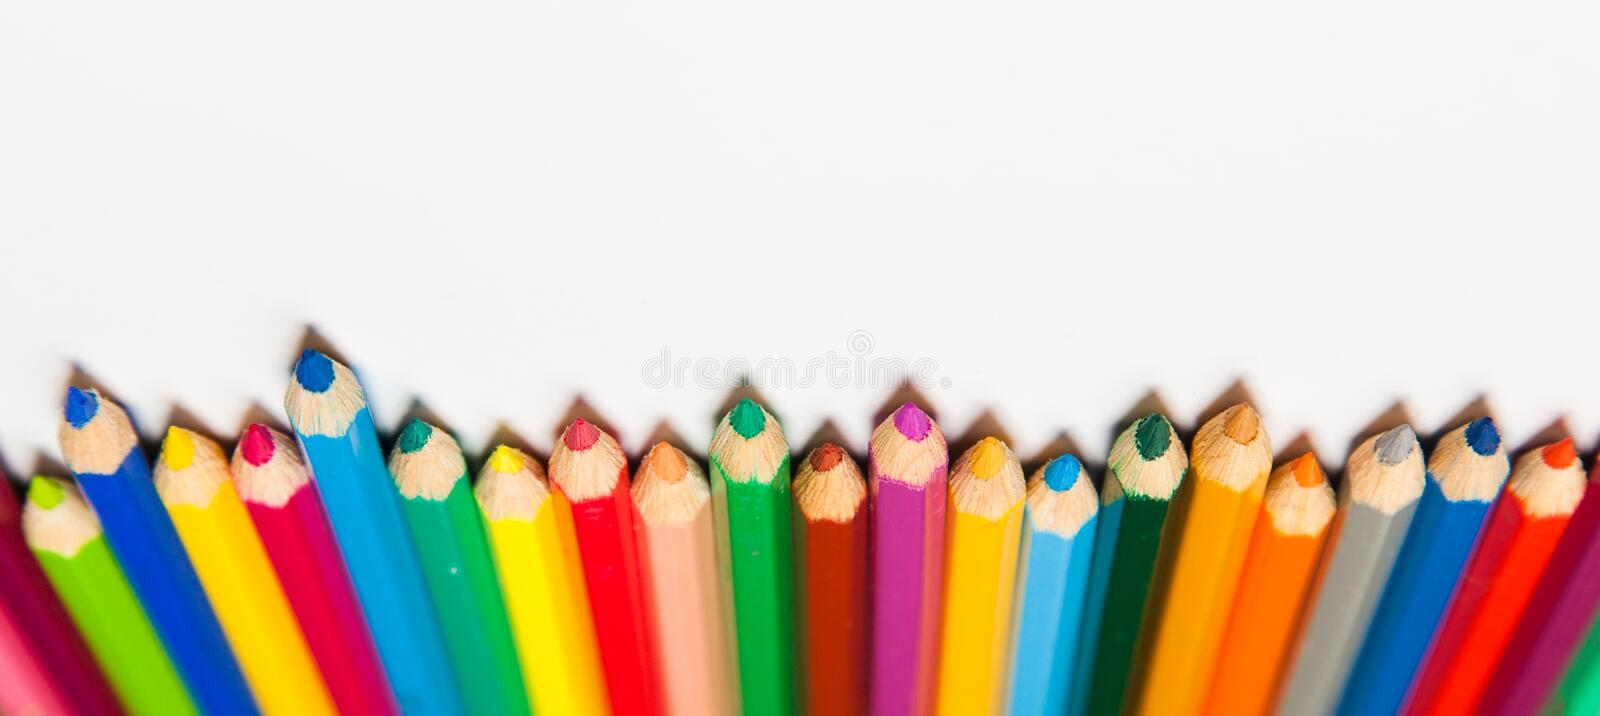 Set of colorful pencils isolated on white background royalty free stock photo